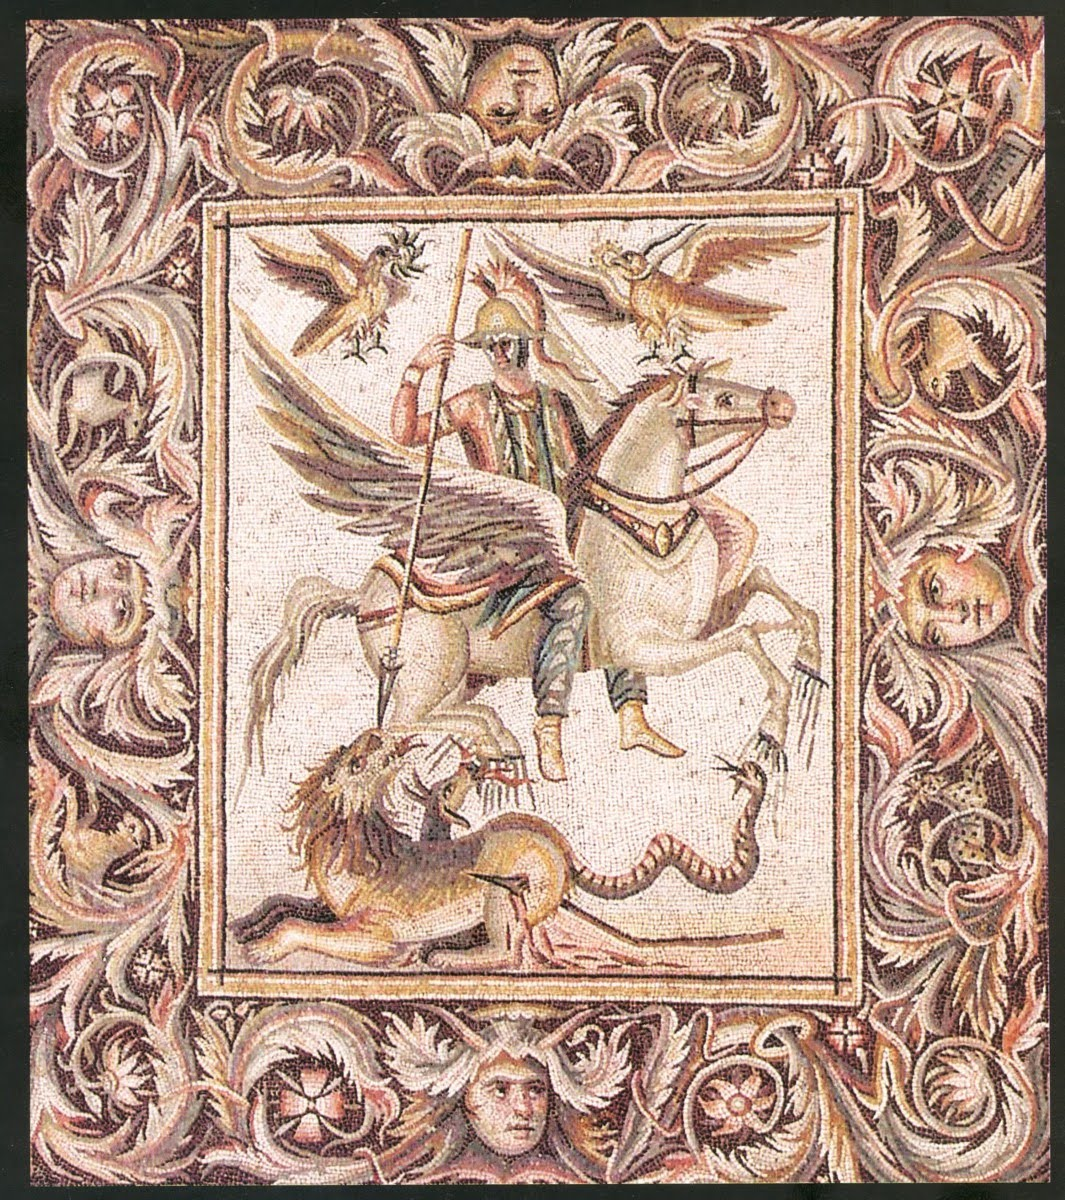 Bellerophon on Pegasus, slaying the Chimera, cr. 260 AD, Palmyra, Syria (Roman culture)